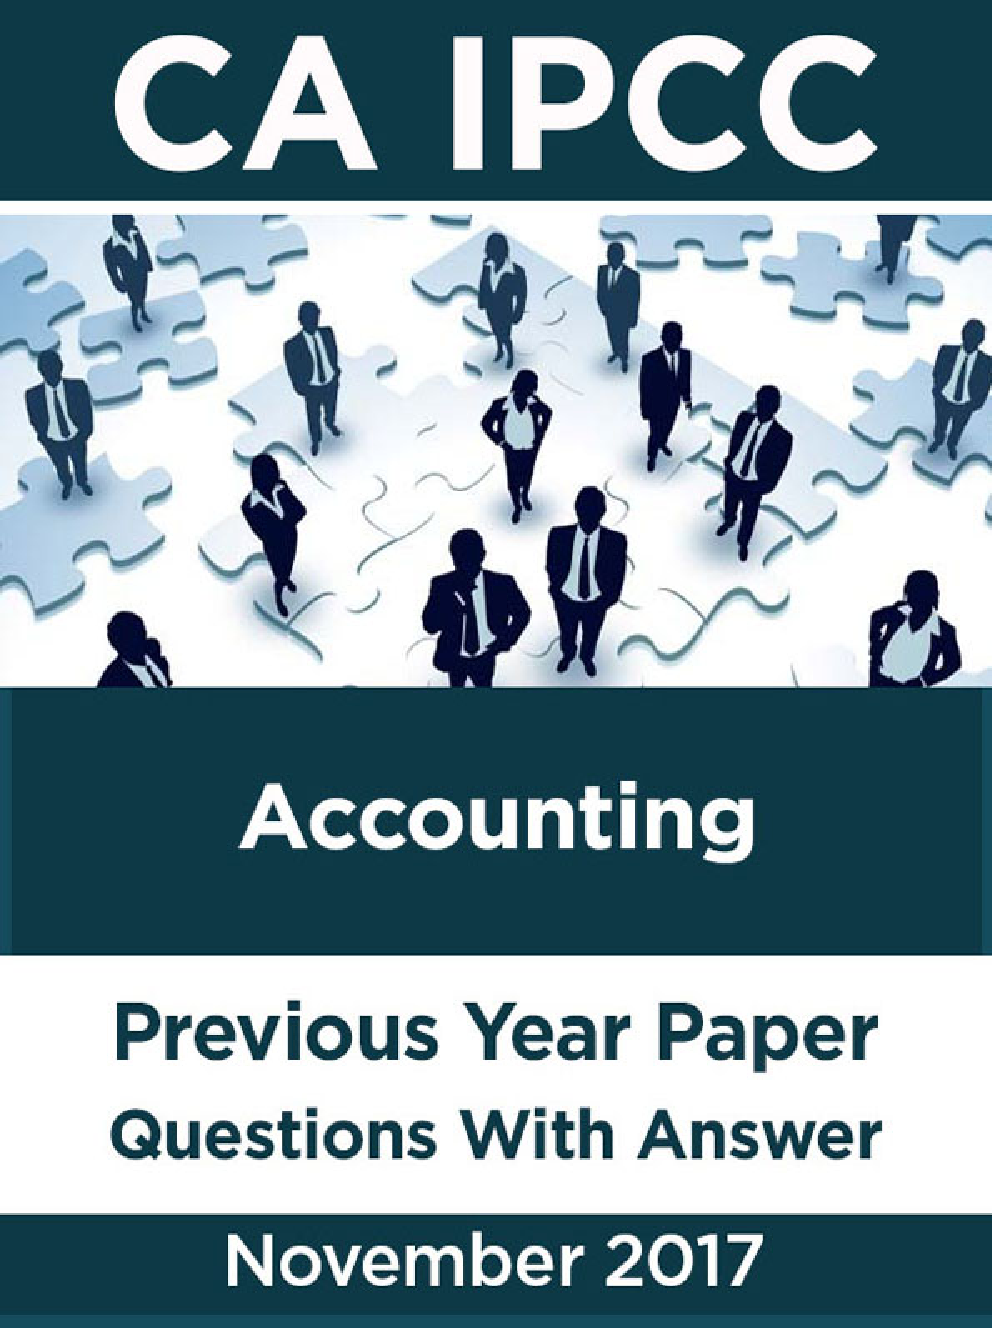 CA IPCC For Accounting November 2017 Previous Year Paper Question With Answer - Page 1